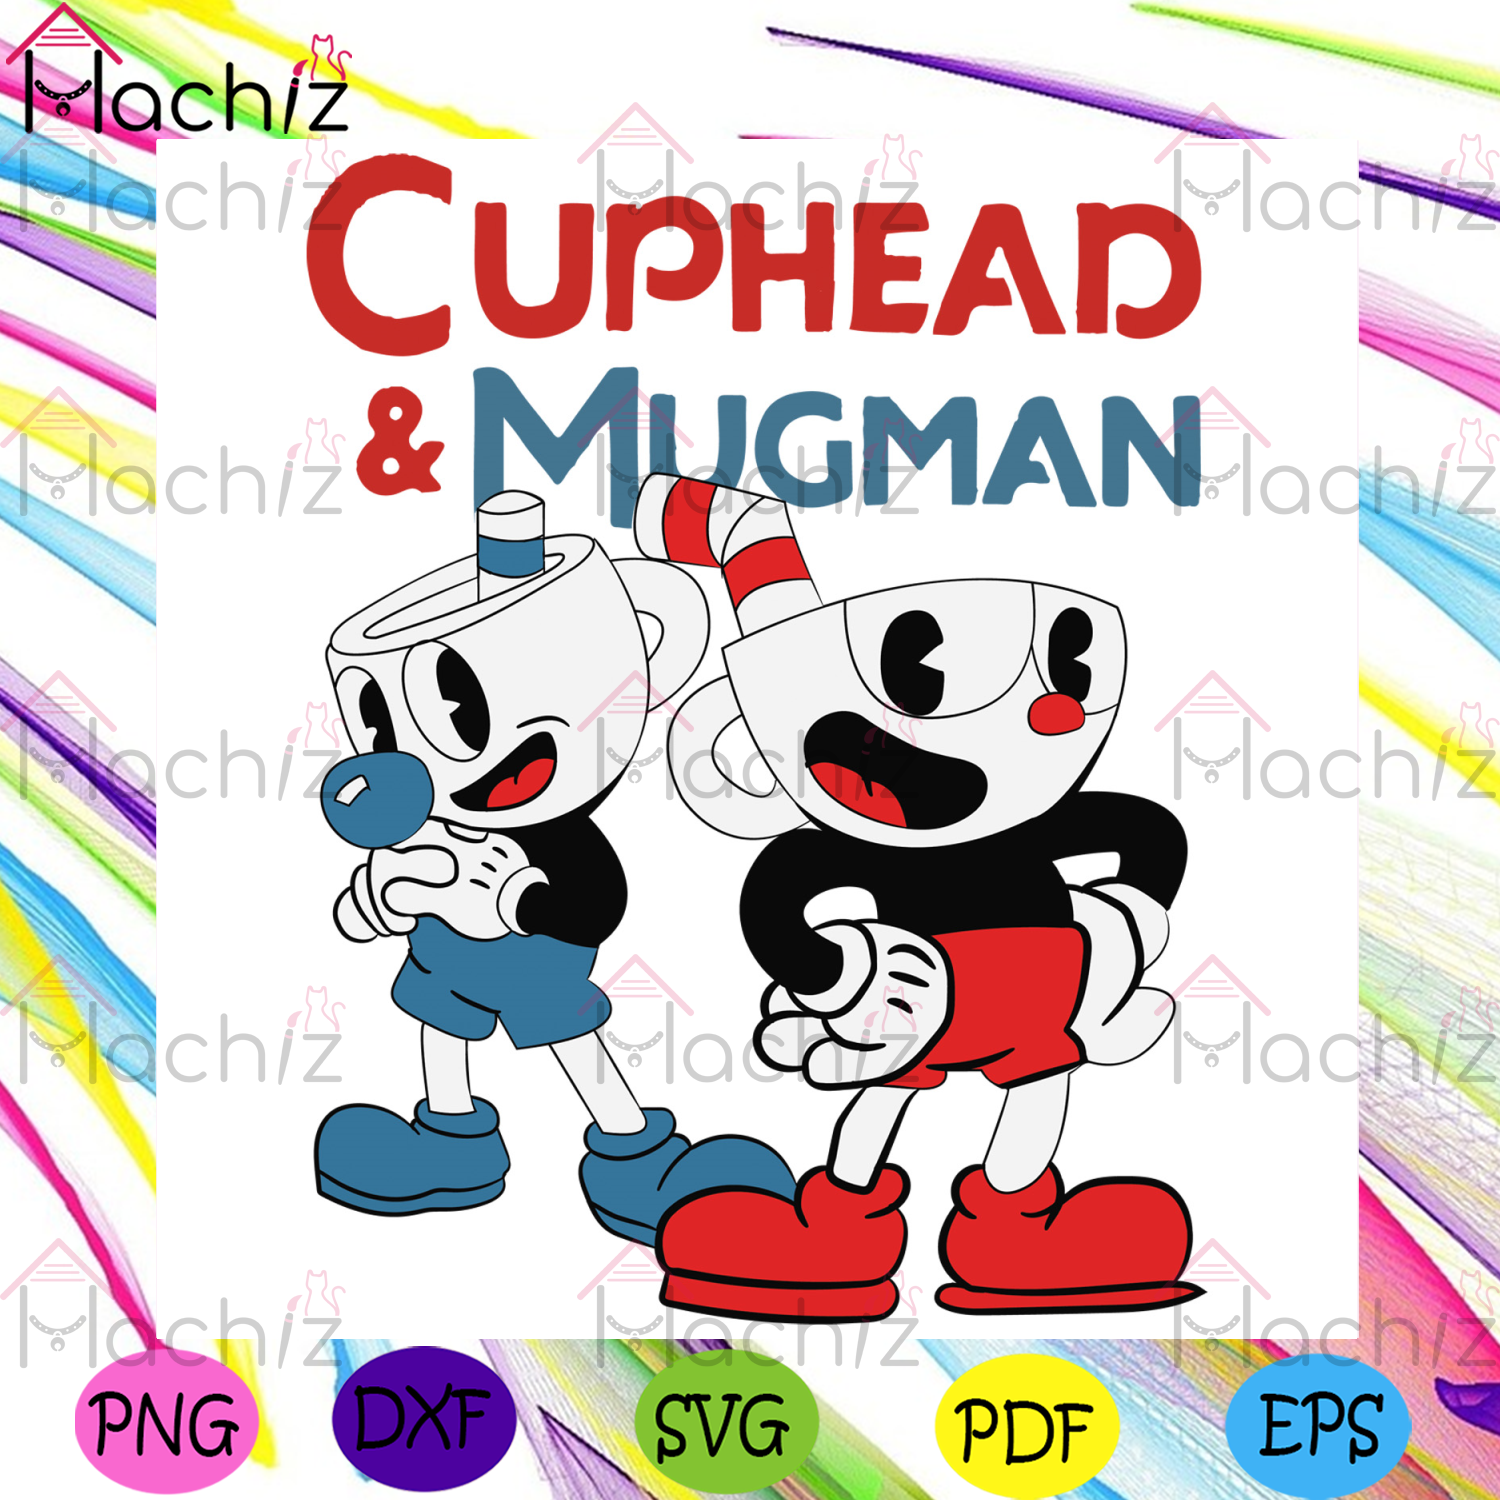 Cuphead And Mugman Svg, Trending Svg, Cuphead Svg, Mugman Svg, Couple Cup Svg, Cuphead Lover, Dynamic Duo Svg, Cuphead Birthday, Cuphead Decor, Party Decoration Svg, Gift For Kids, Svg Cricut